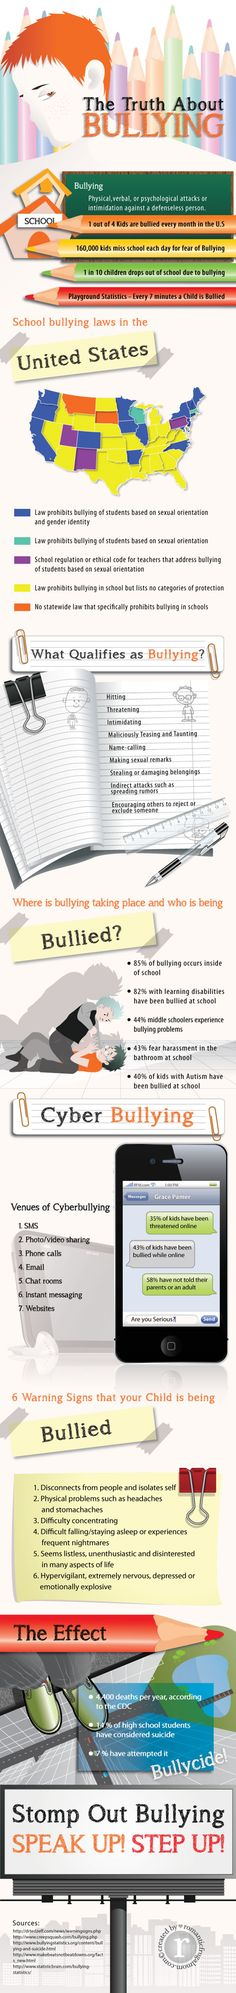 The Truth About Bullying- Bullying is a problem that seems to stain the lives of every generation of kids and yet we fail, as a society, to adequately deal and route out the core problem. How many more young lives must be ruined before we get a handle on this damaging practice? #infographic